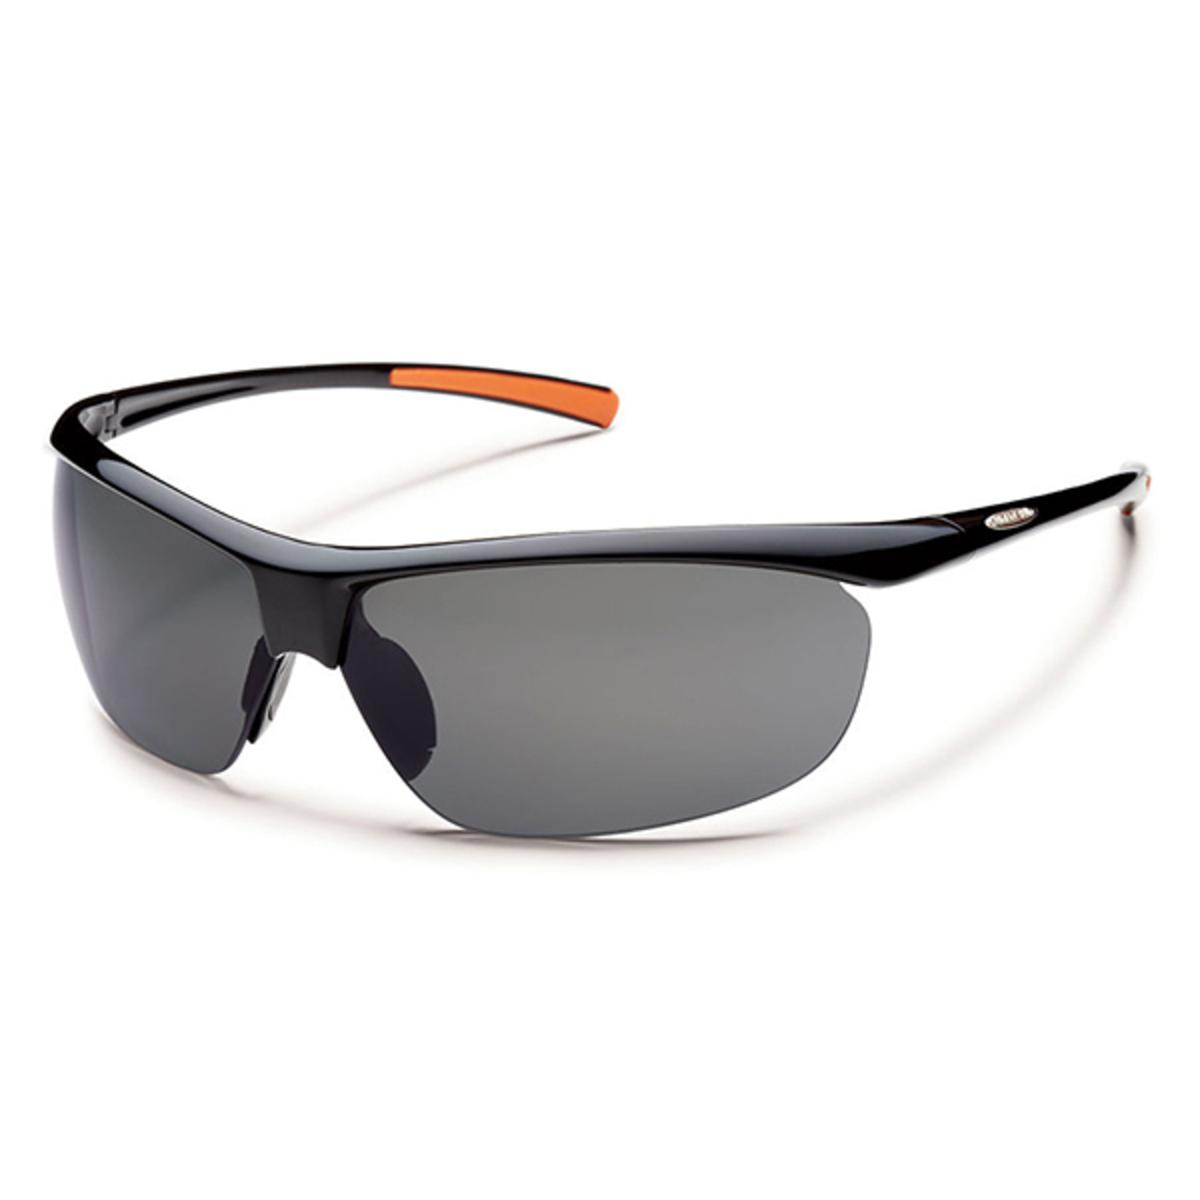 831e82667f Suncloud Rimless Zephyr Black Polarized Gray Sunglasses - The Warming Store